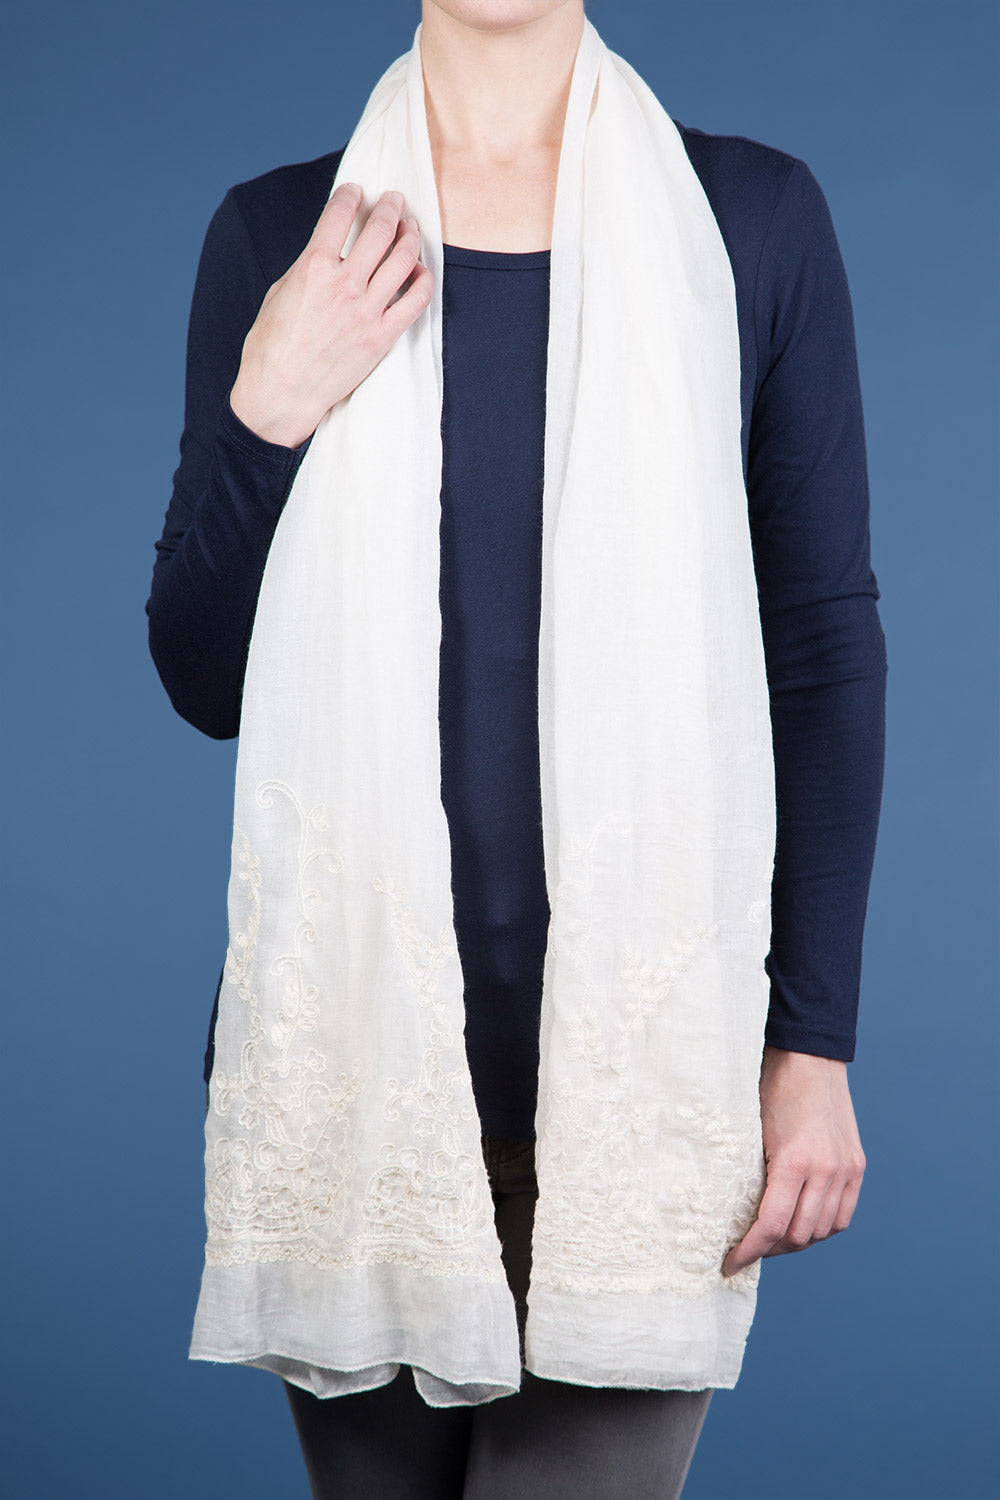 Type 2 A Healing Touch Scarf In Cream